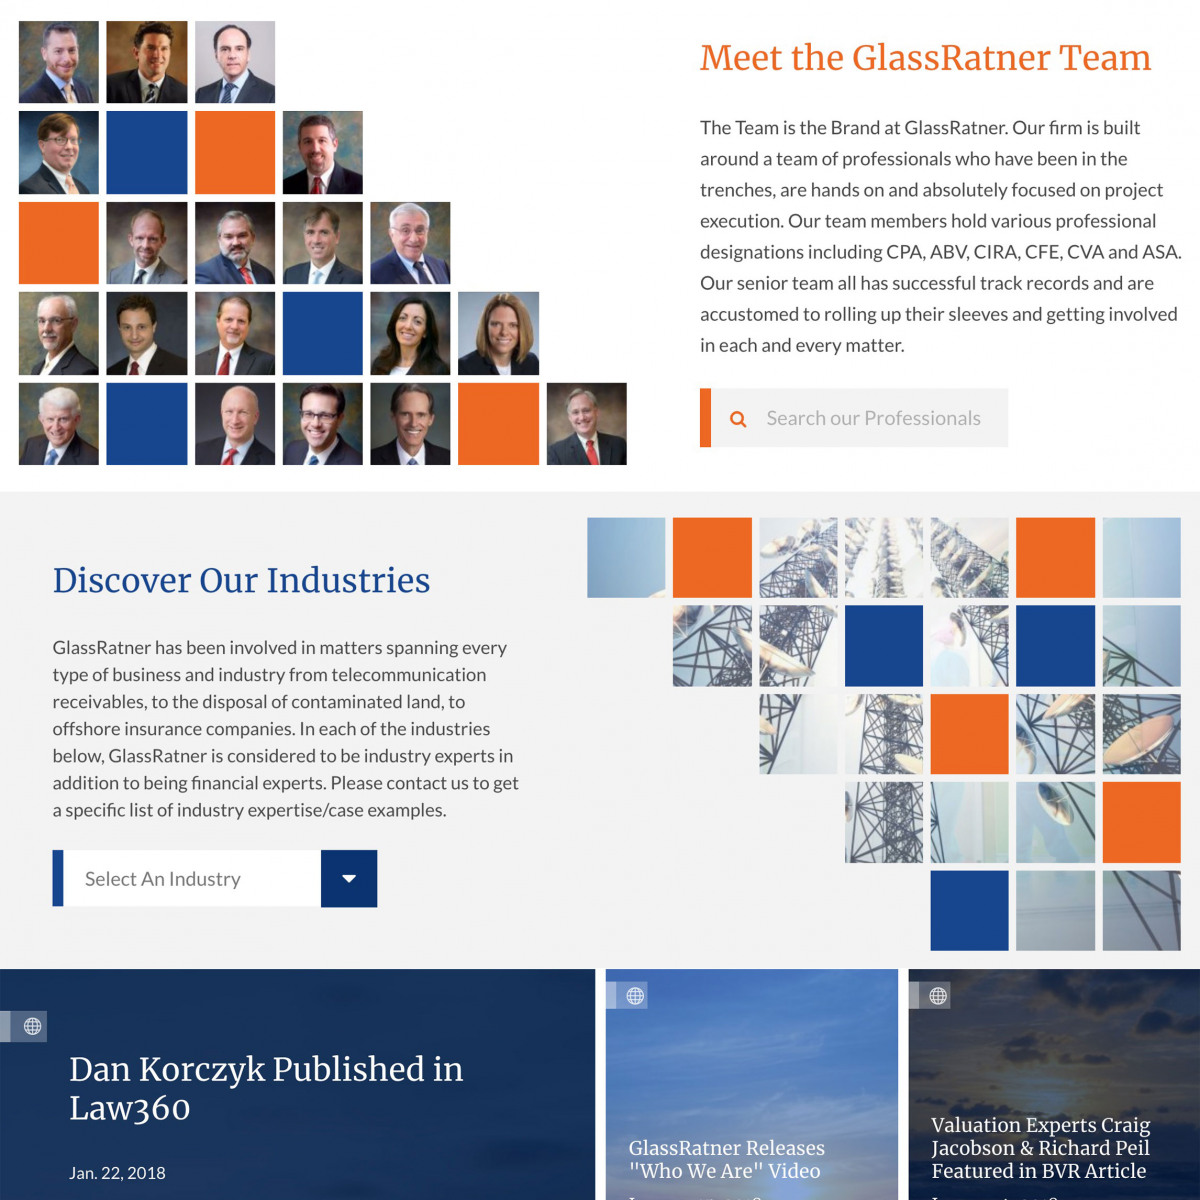 Image of website for GlassRatner